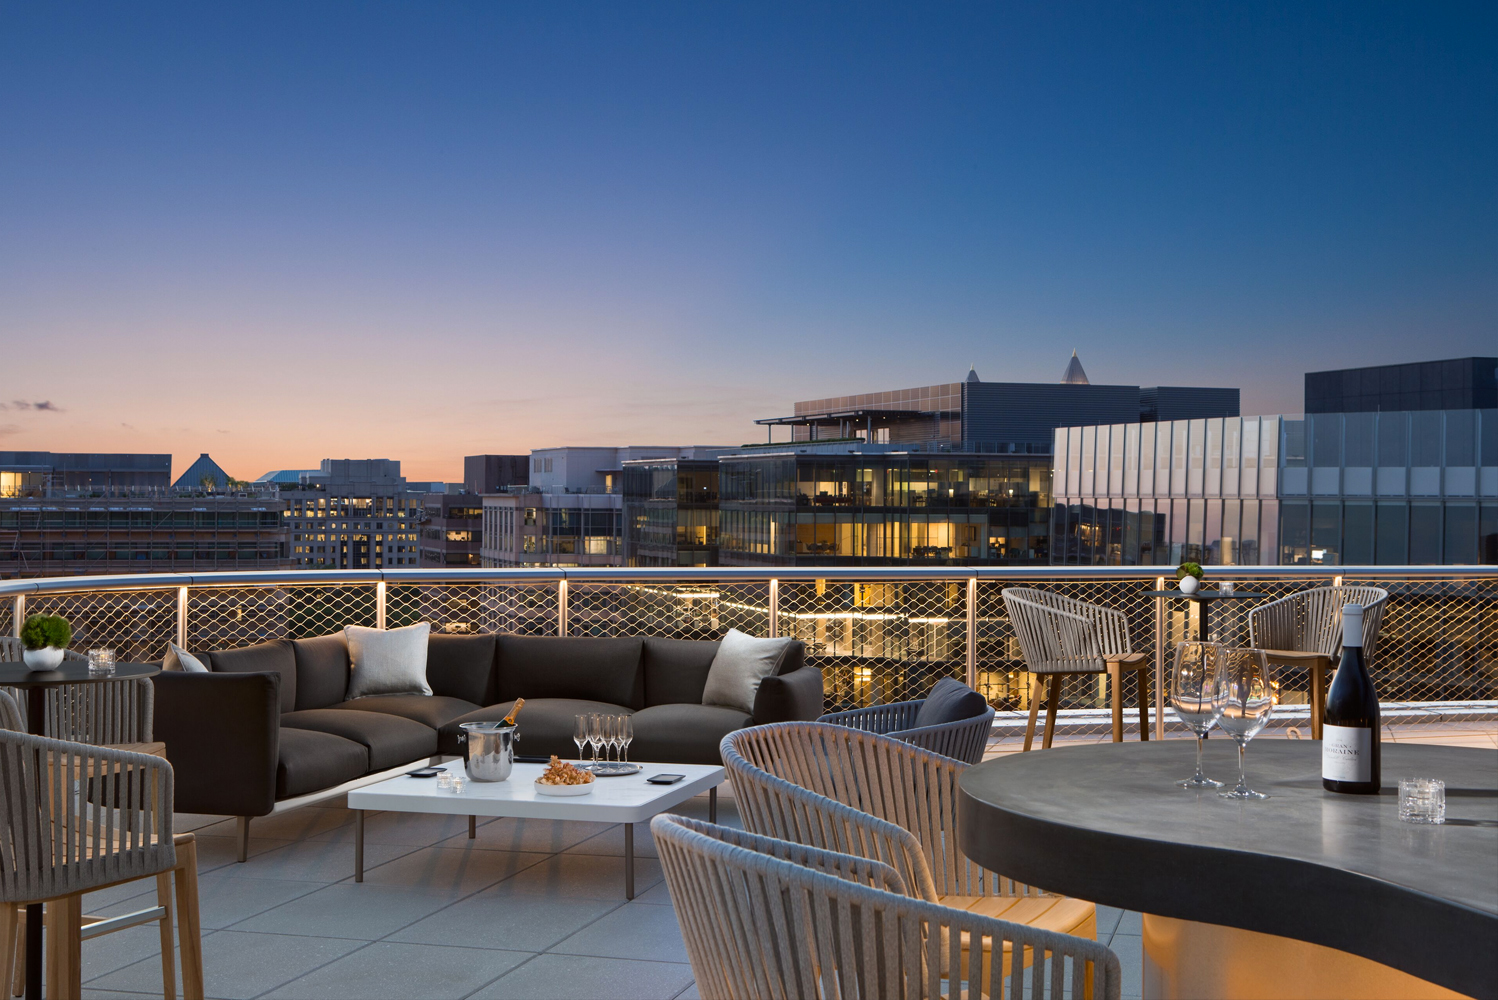 Situated on the 11th floor of the newly opened Conrad Washington, DC, the rooftop venue can accommodate 140 guests.